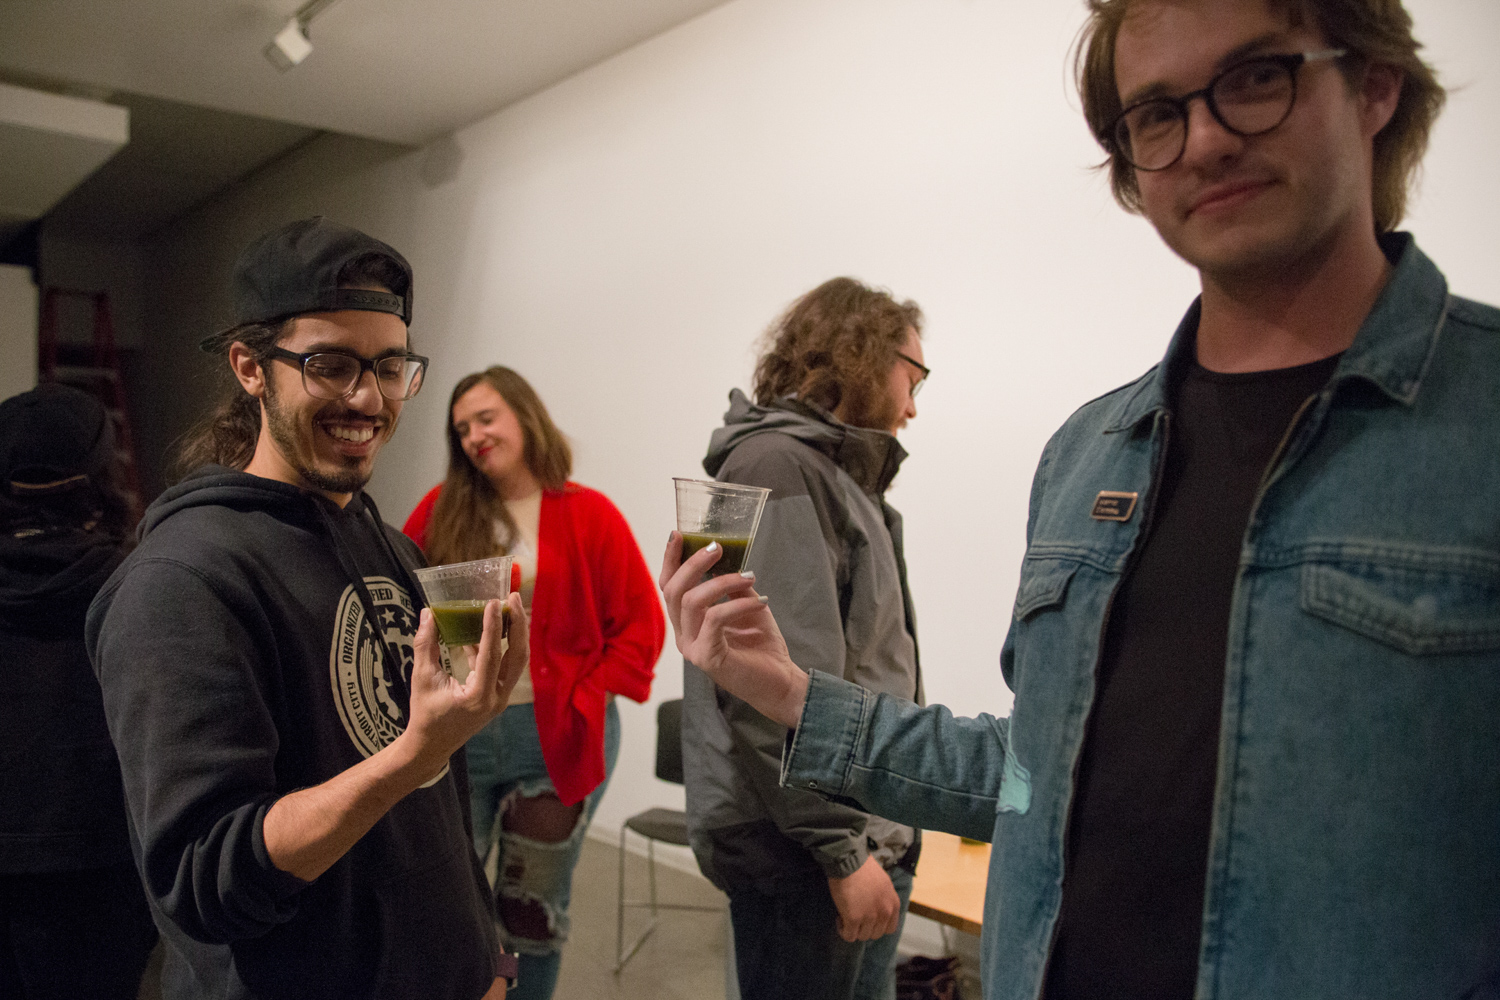 People giving each other a toast at Paul Esposito's solo show.